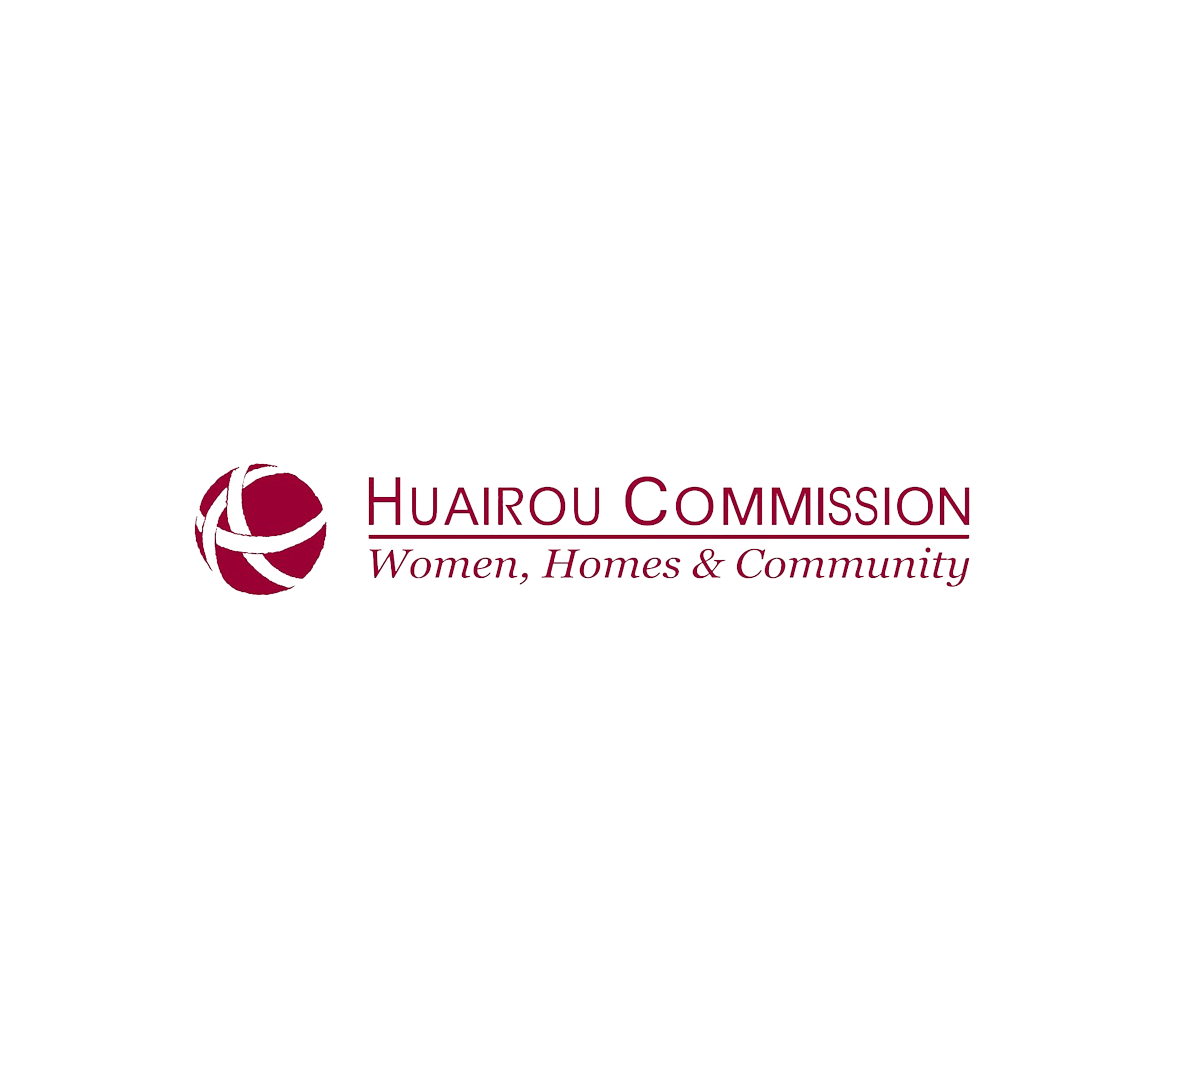 Huairou Commission logo